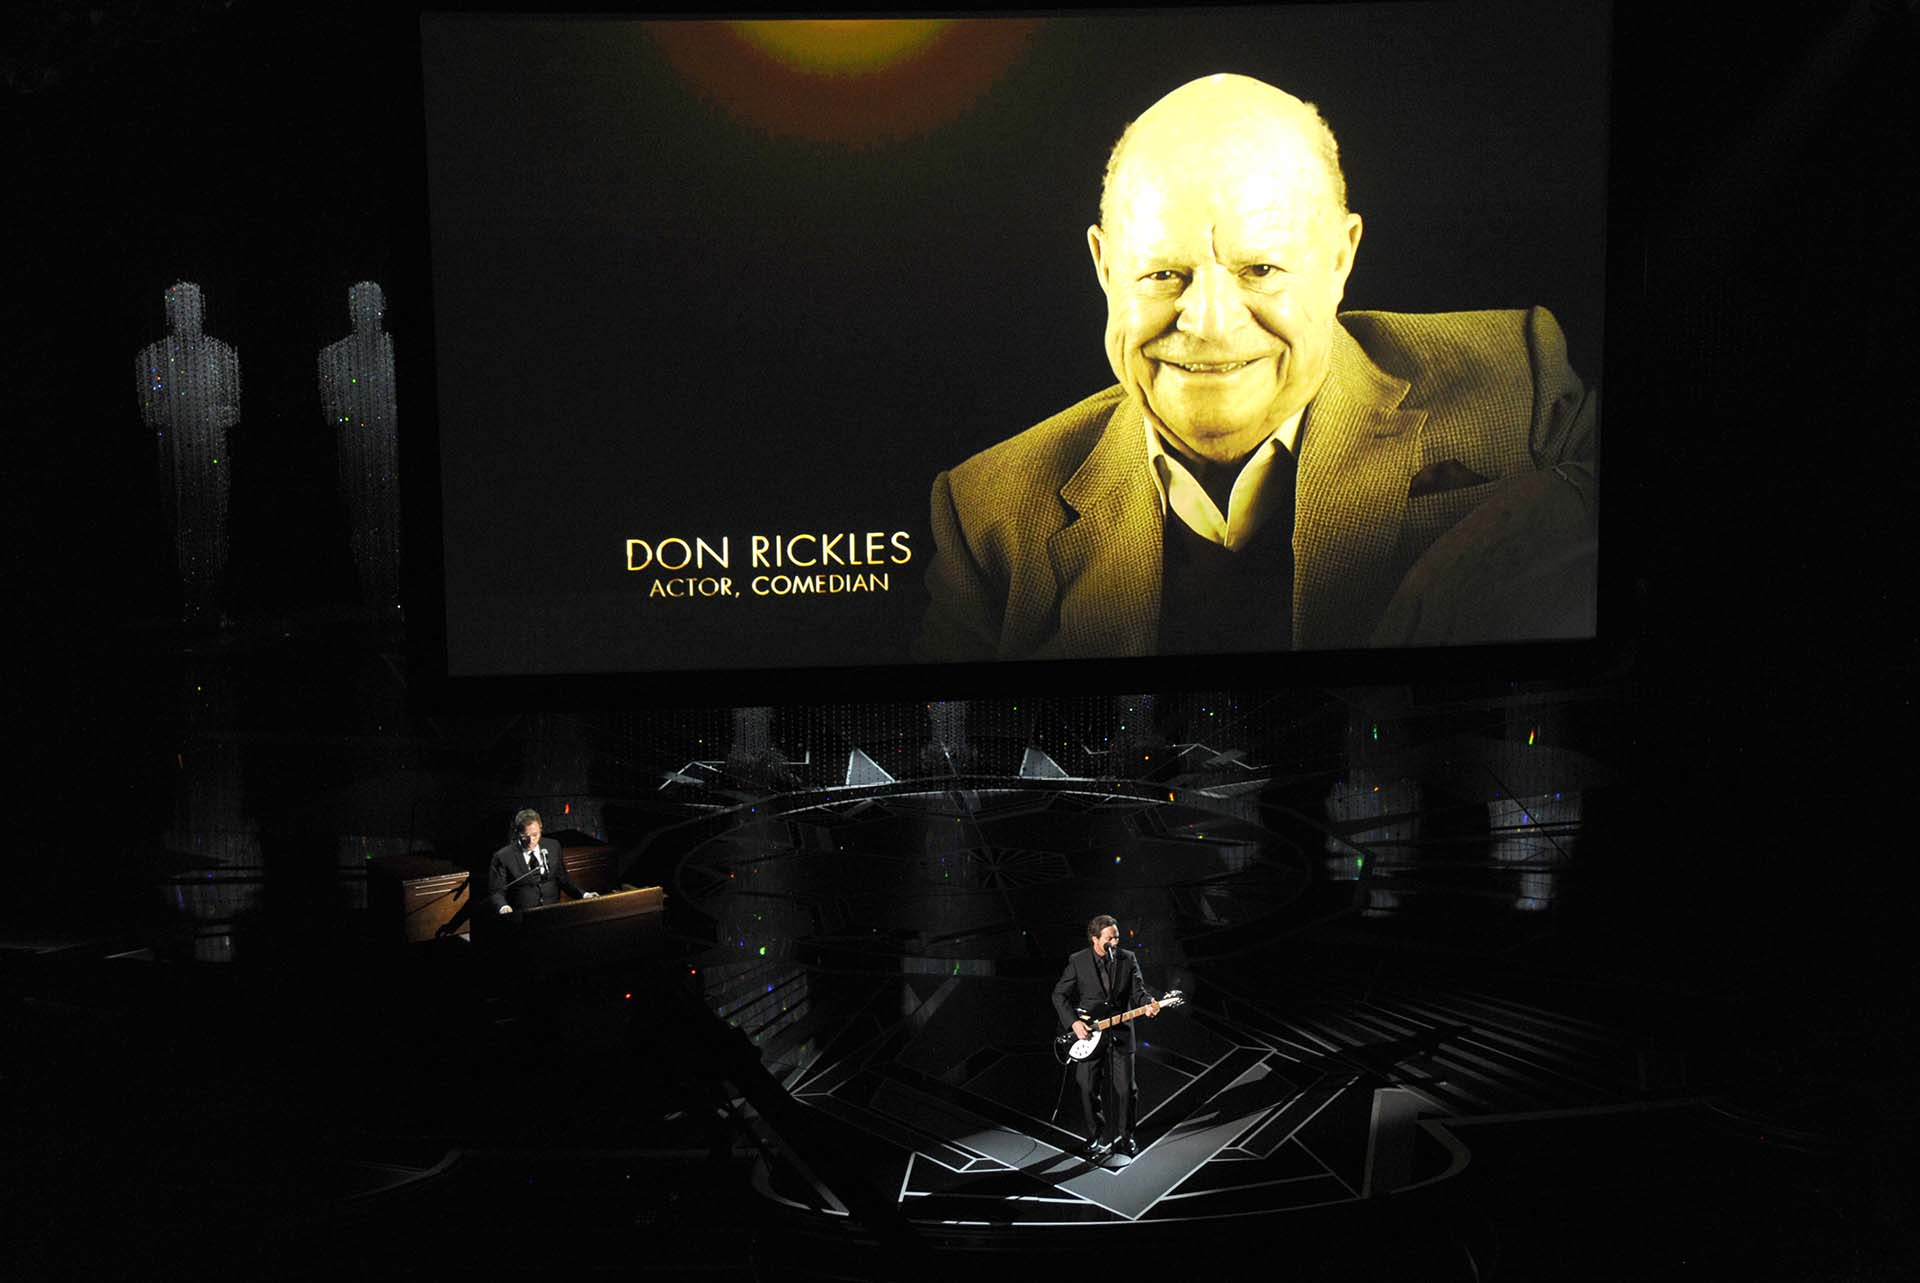 Don Rickles en el emotivo video en memoria a los artistas que ya no están (Invision/AP)